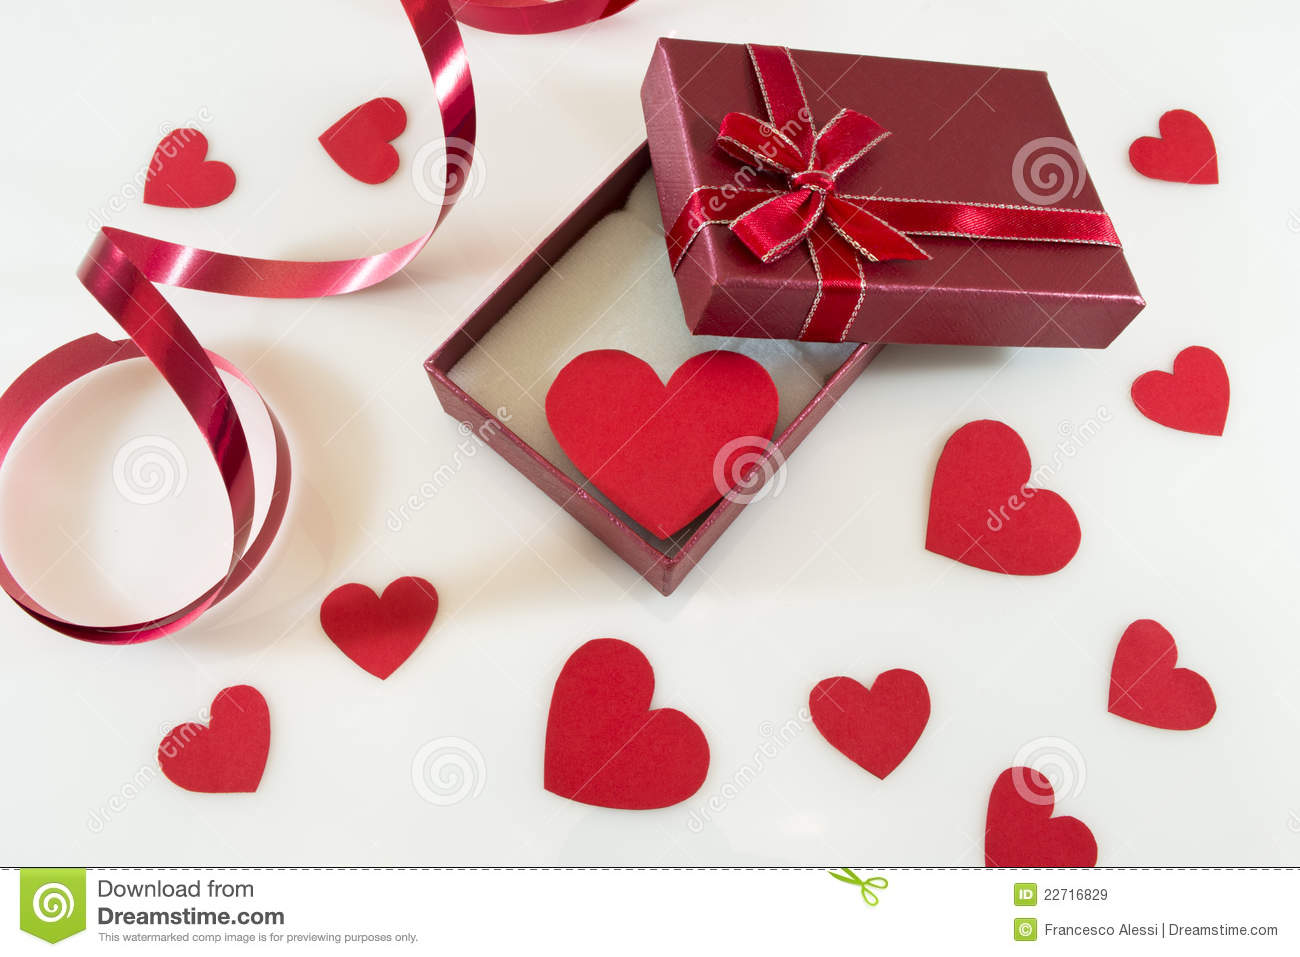 Valentine's Day Gift Royalty Free Stock Images - Image: 22716829